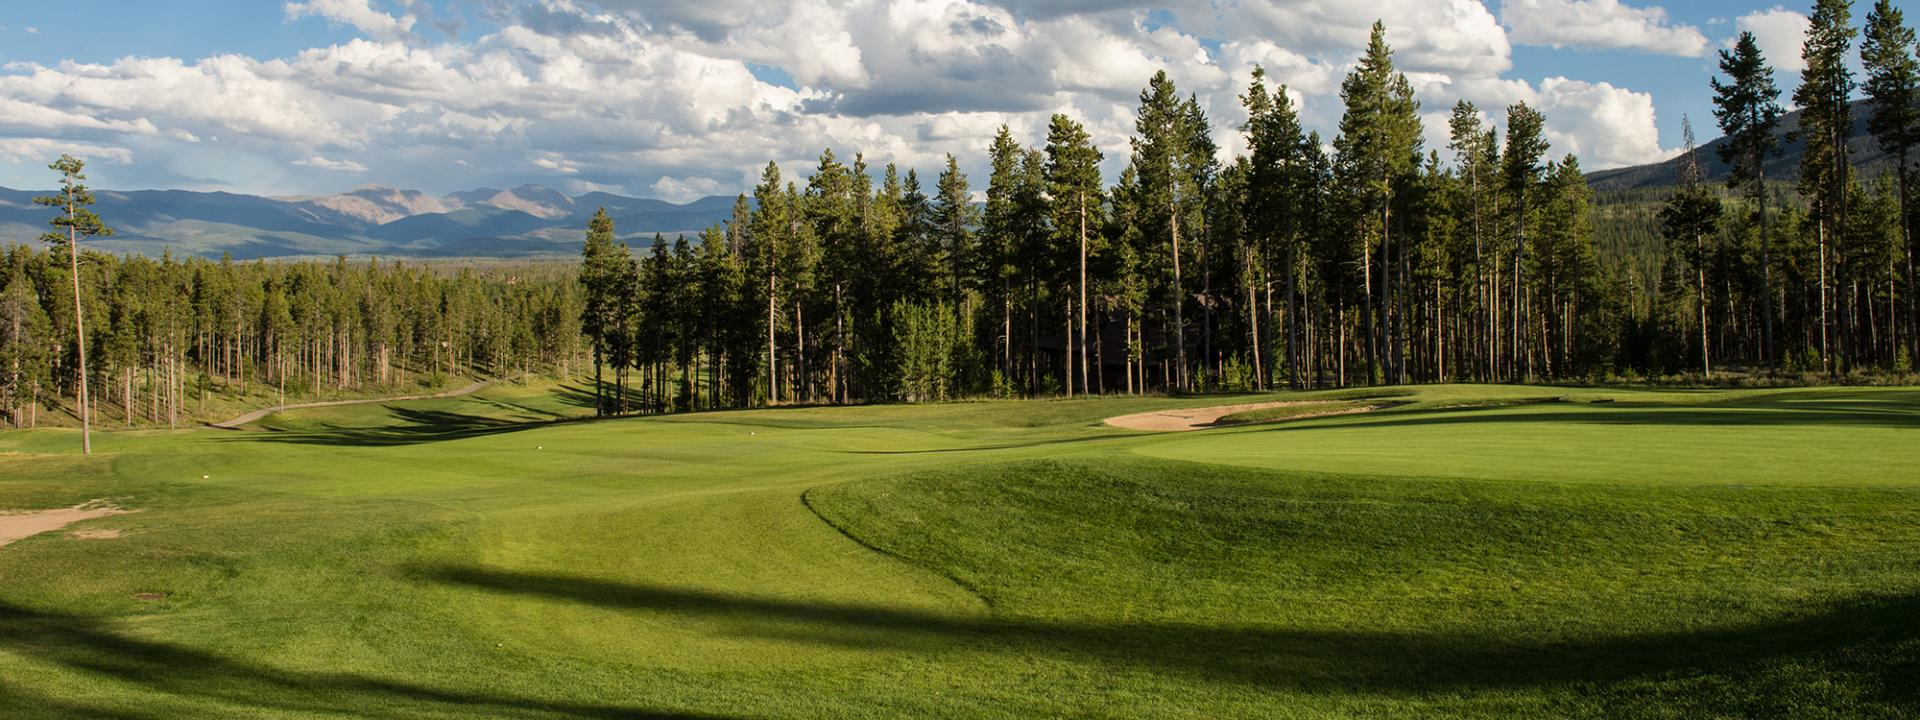 Pole Creek Golf Course in Winter Park, Colorado